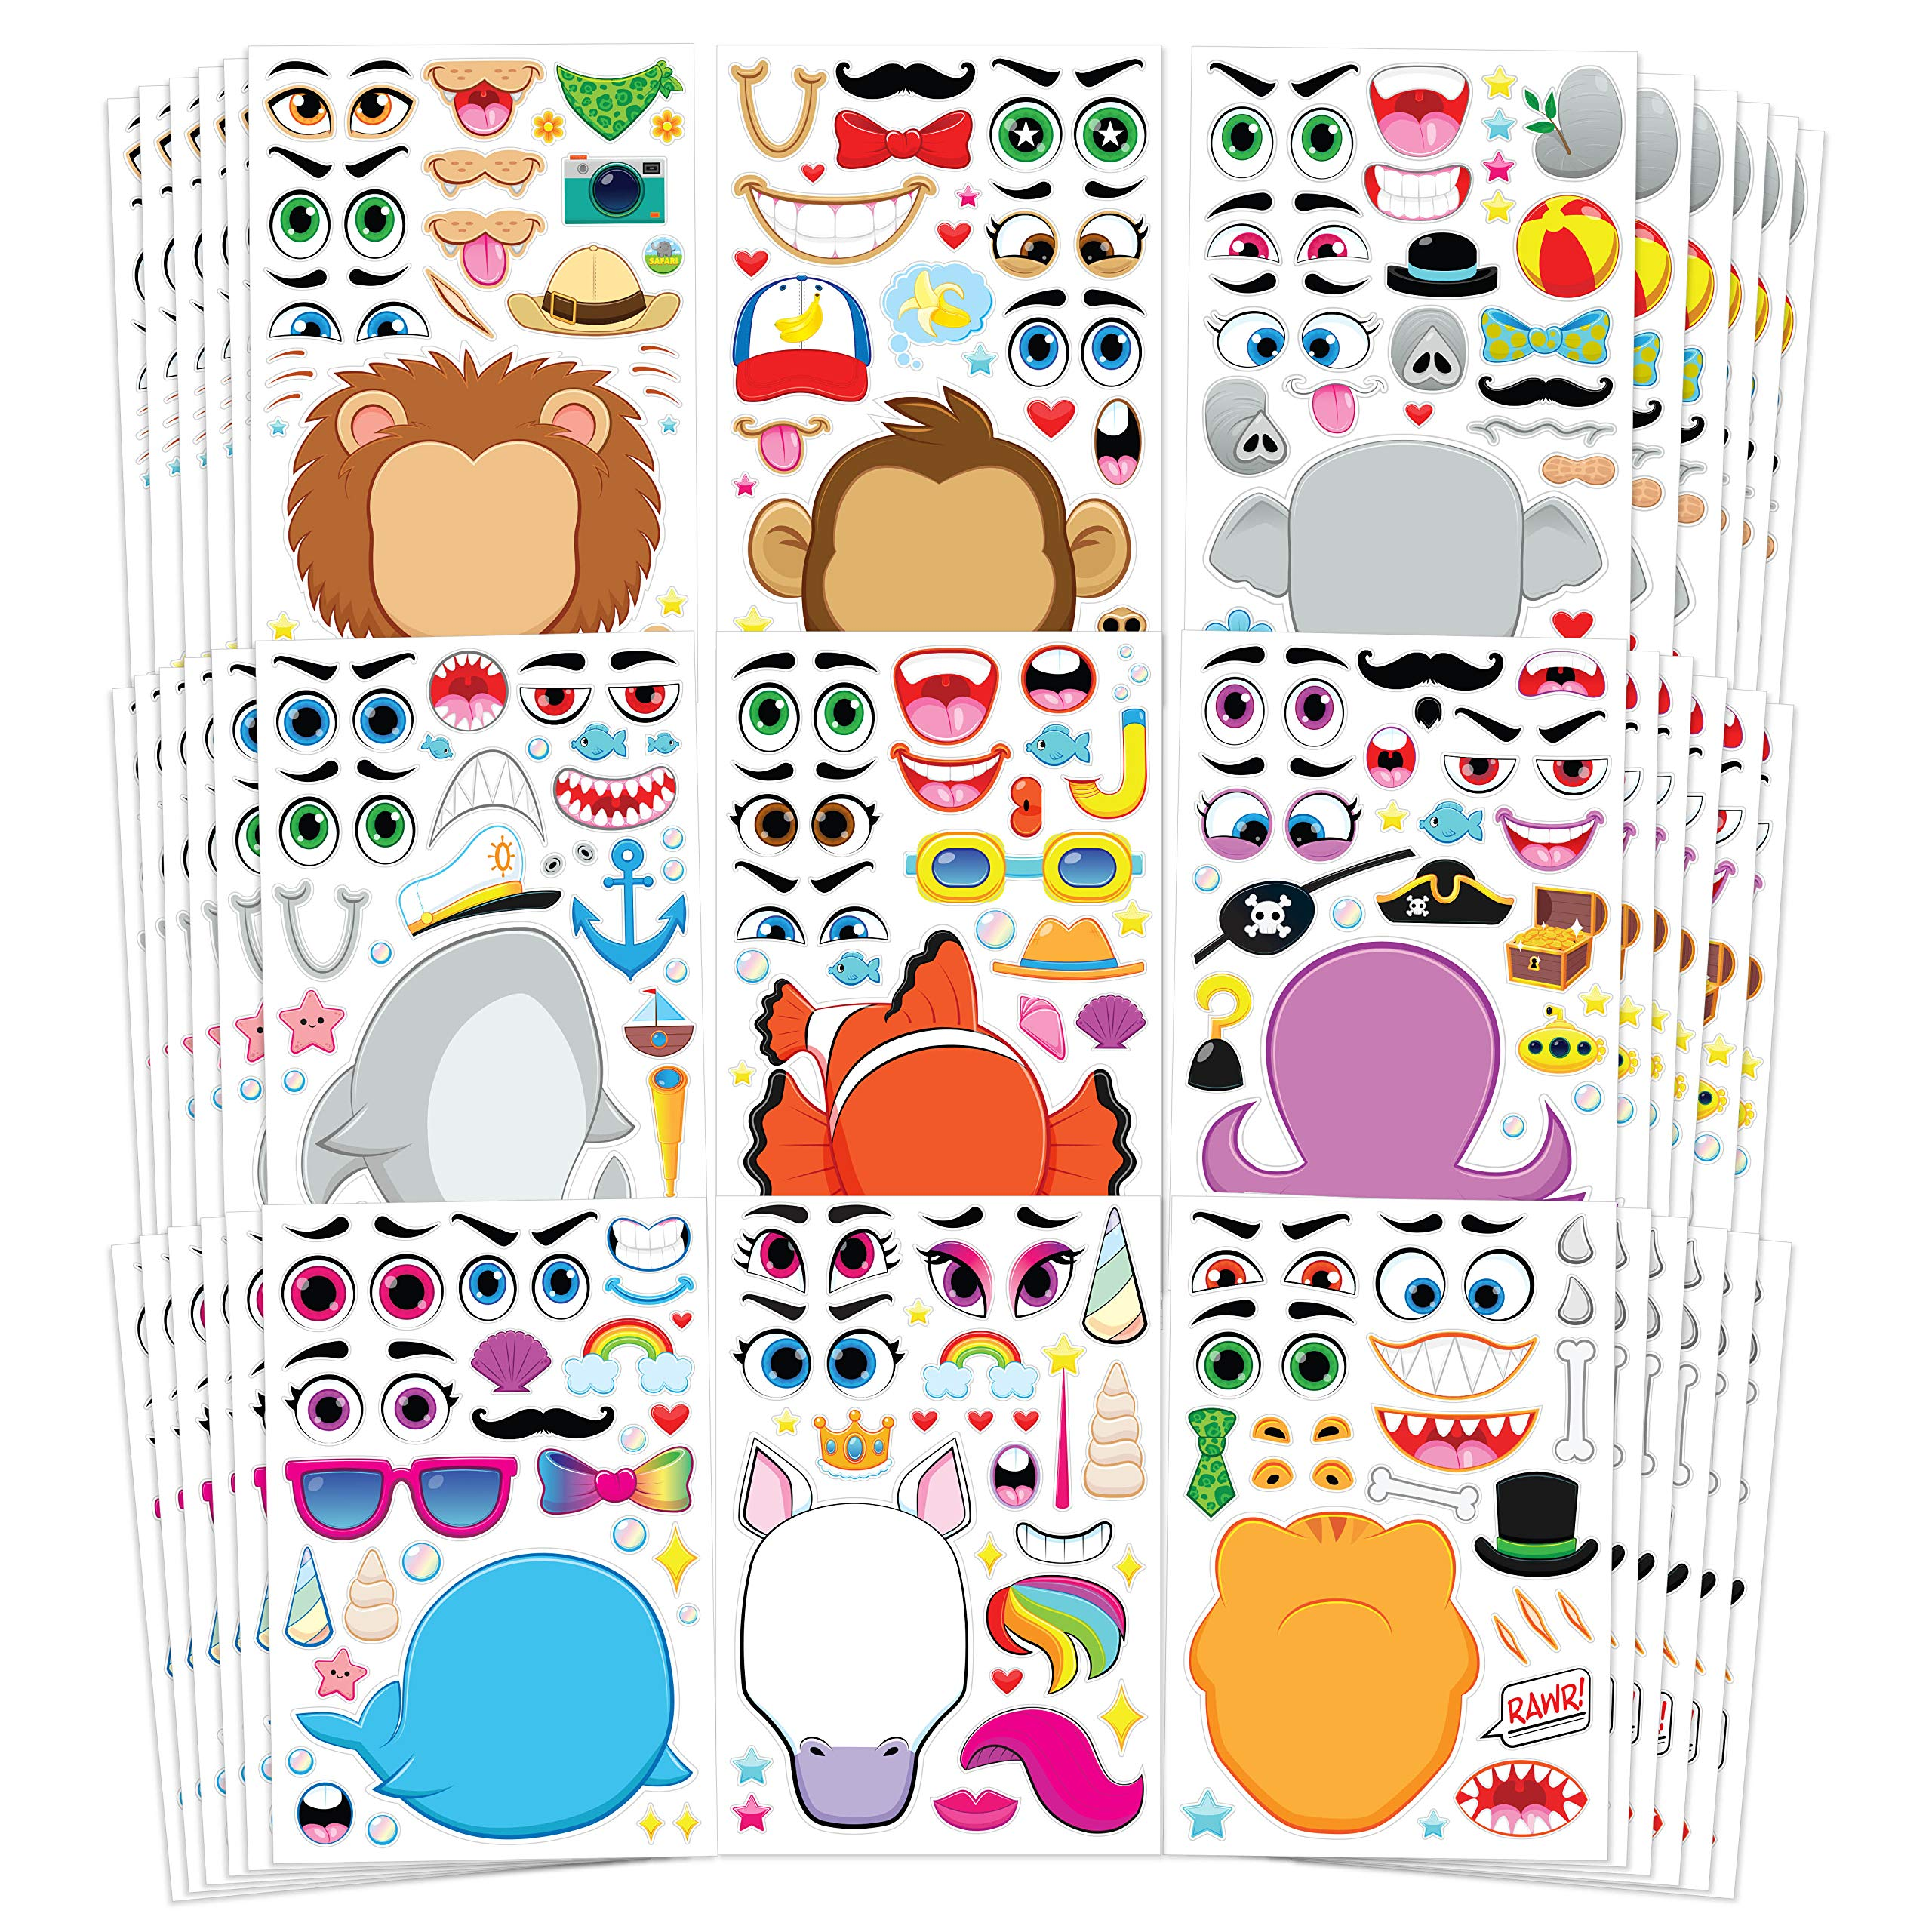 JOYIN 36 PCS Make-a-face Sticker Sheets Make Your Own Animal Mix and Match Sticker Sheets with Safaris, Sea and Fantasy Animals Kids Party Favor Supplies Craft by JOYIN